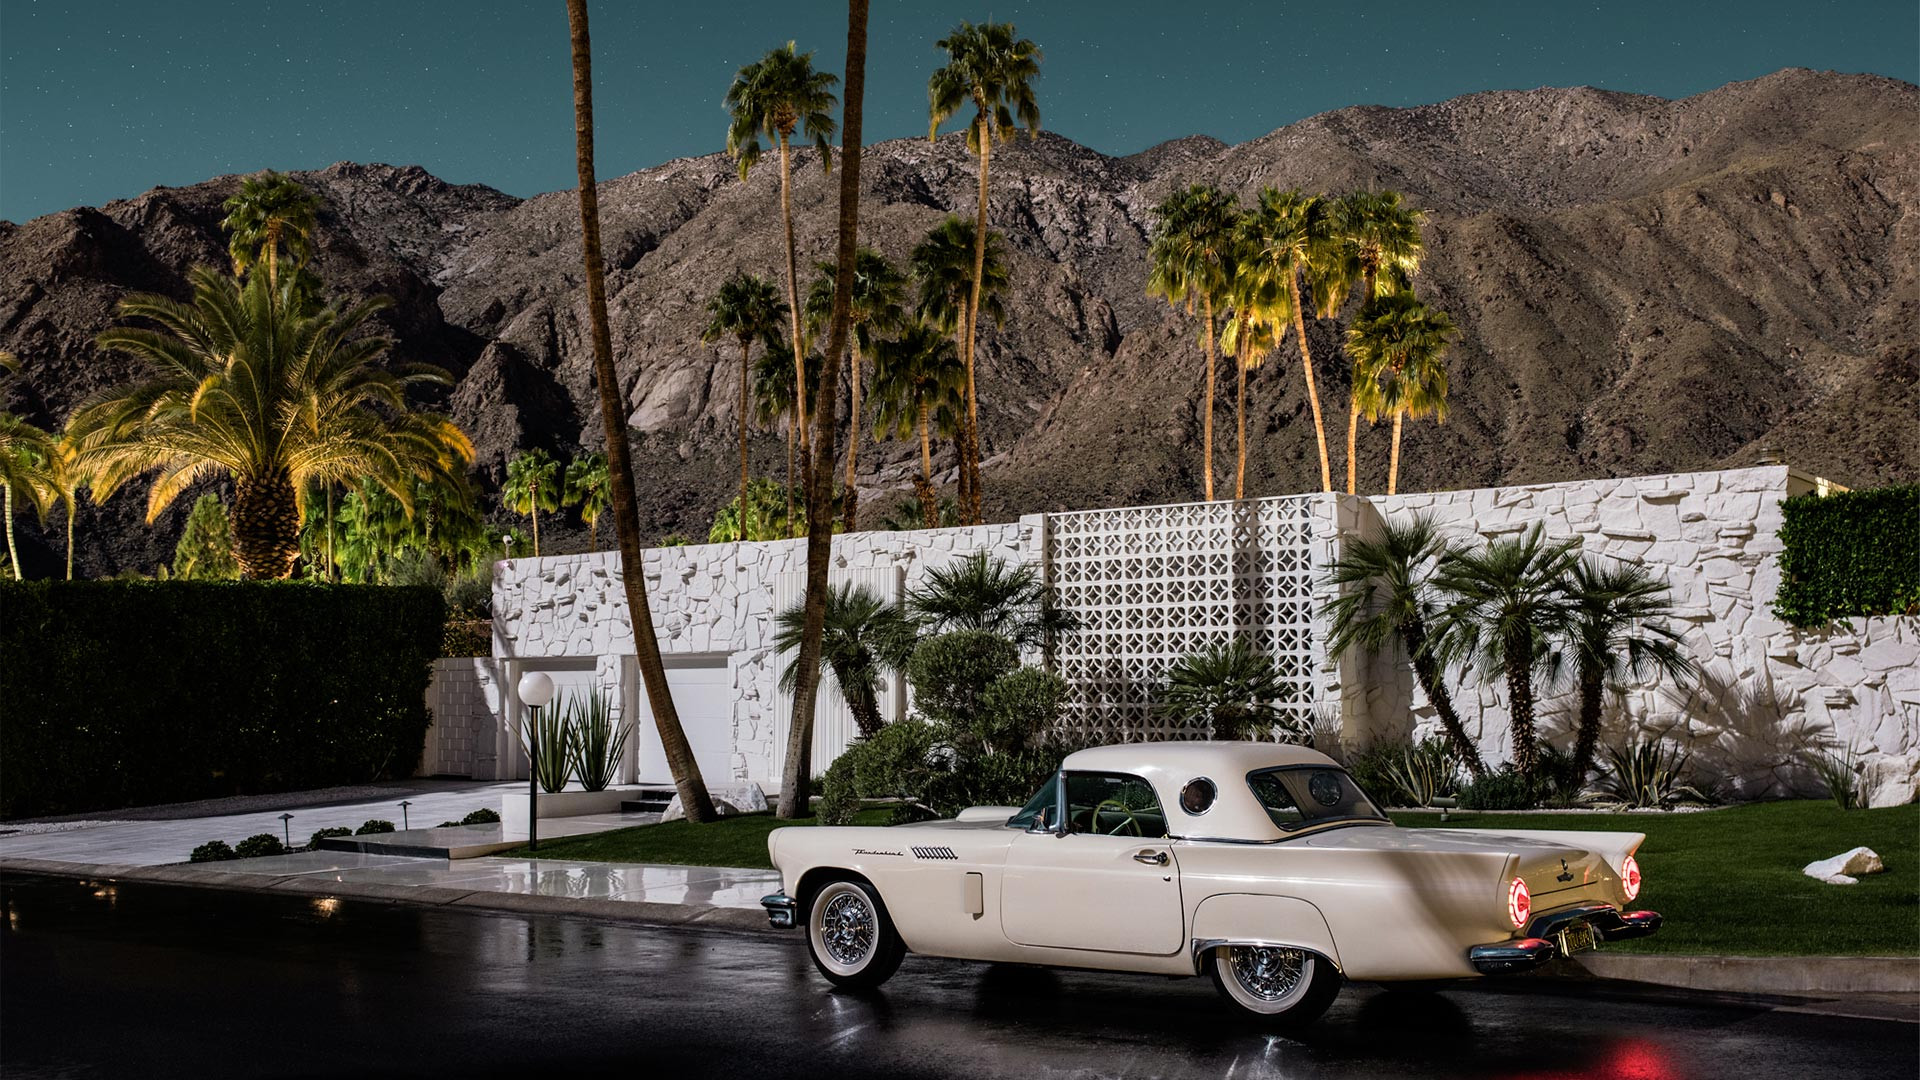 Ford Thunderbird outside Abrigo Corner, Palm Springs